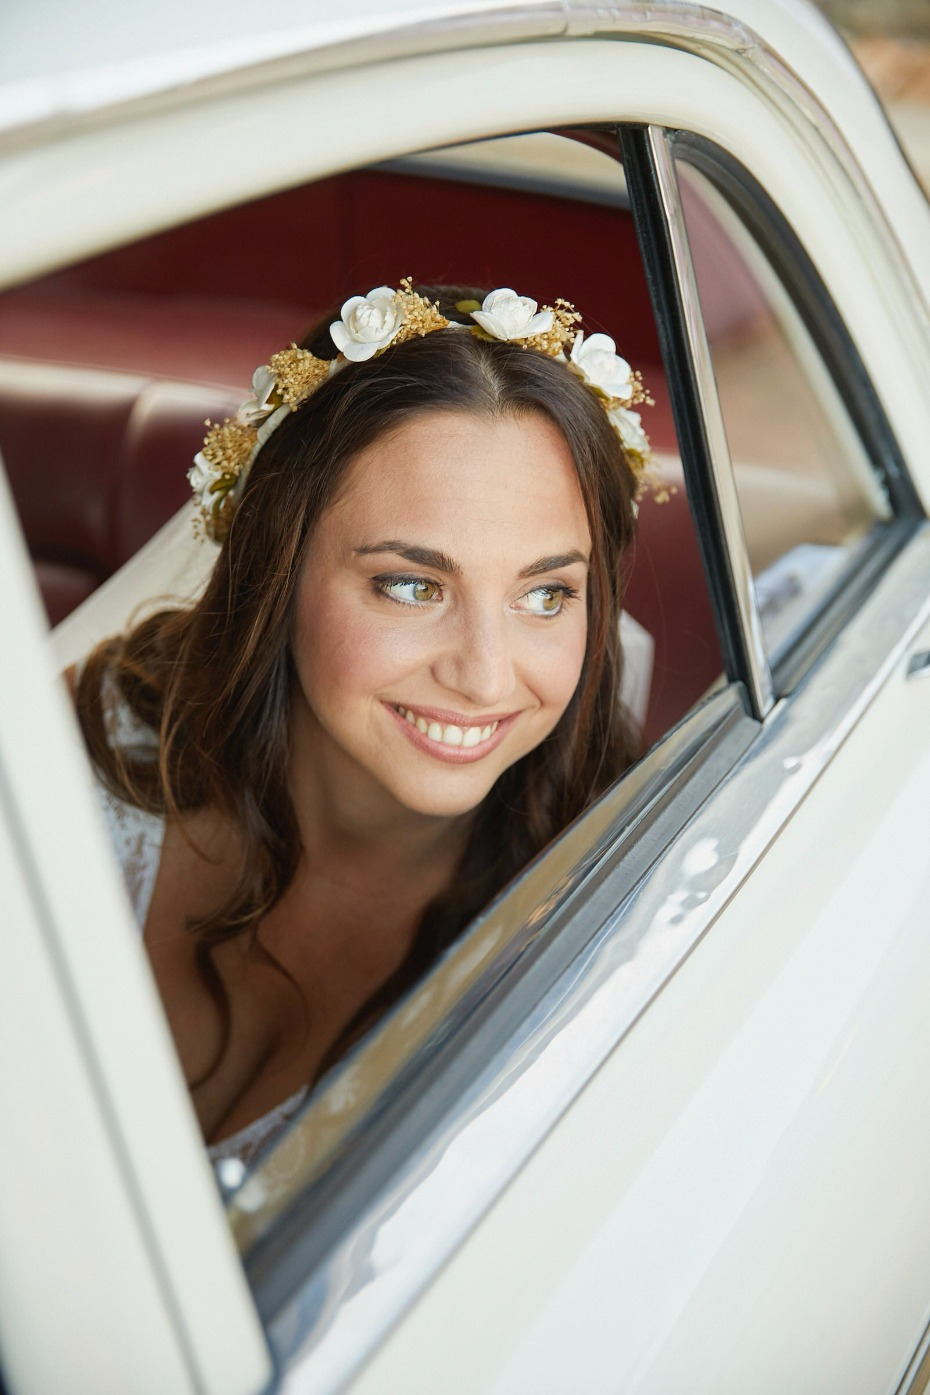 here comes the bride riding in vintage style